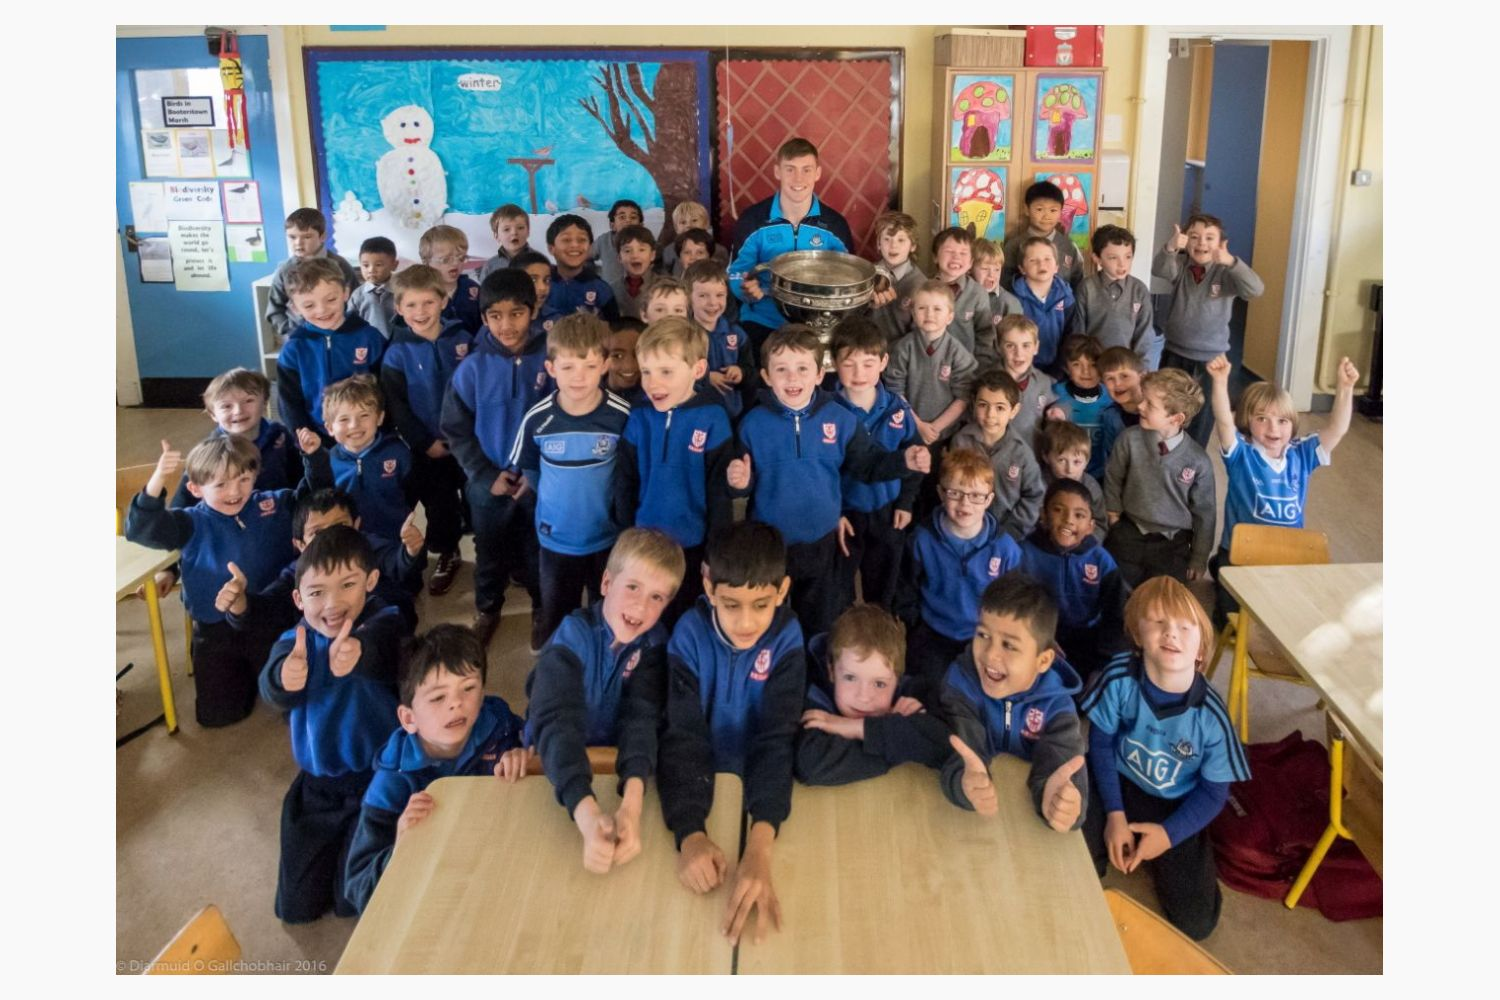 Sam comes to visit St Mary's Booterstown